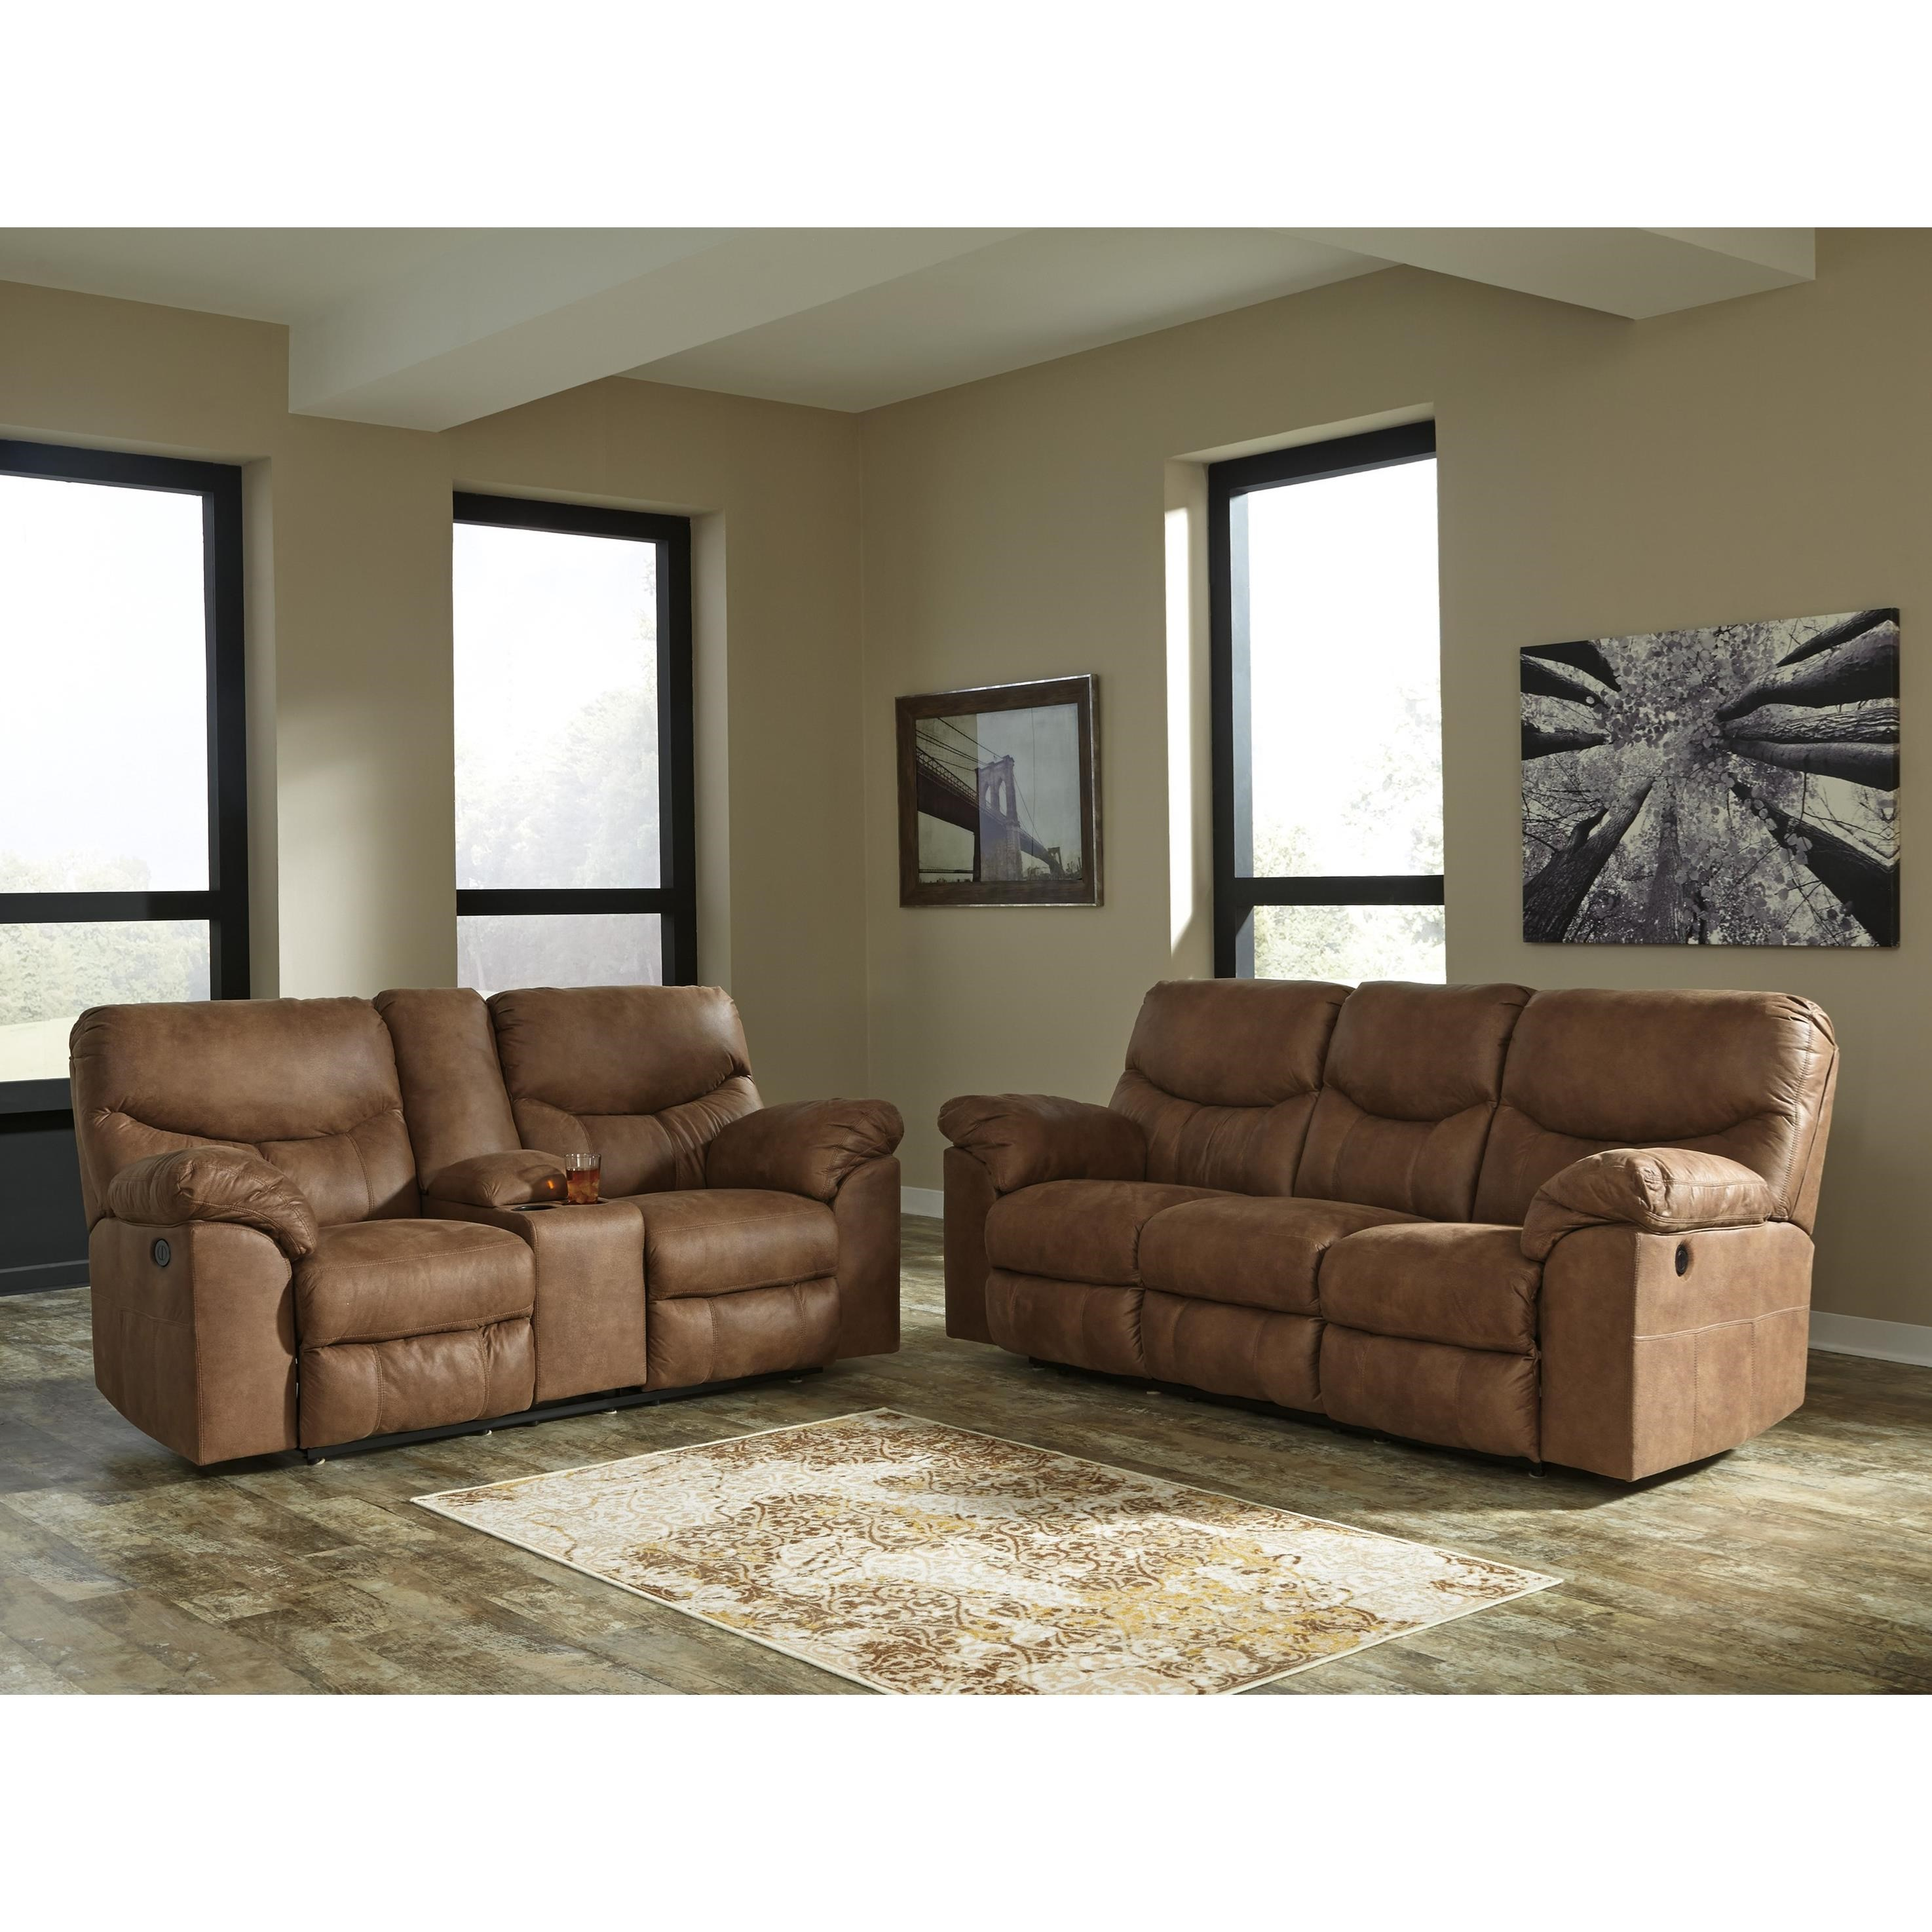 Boxberg Reclining Living Room Group by Signature Design by Ashley at Wilson's Furniture